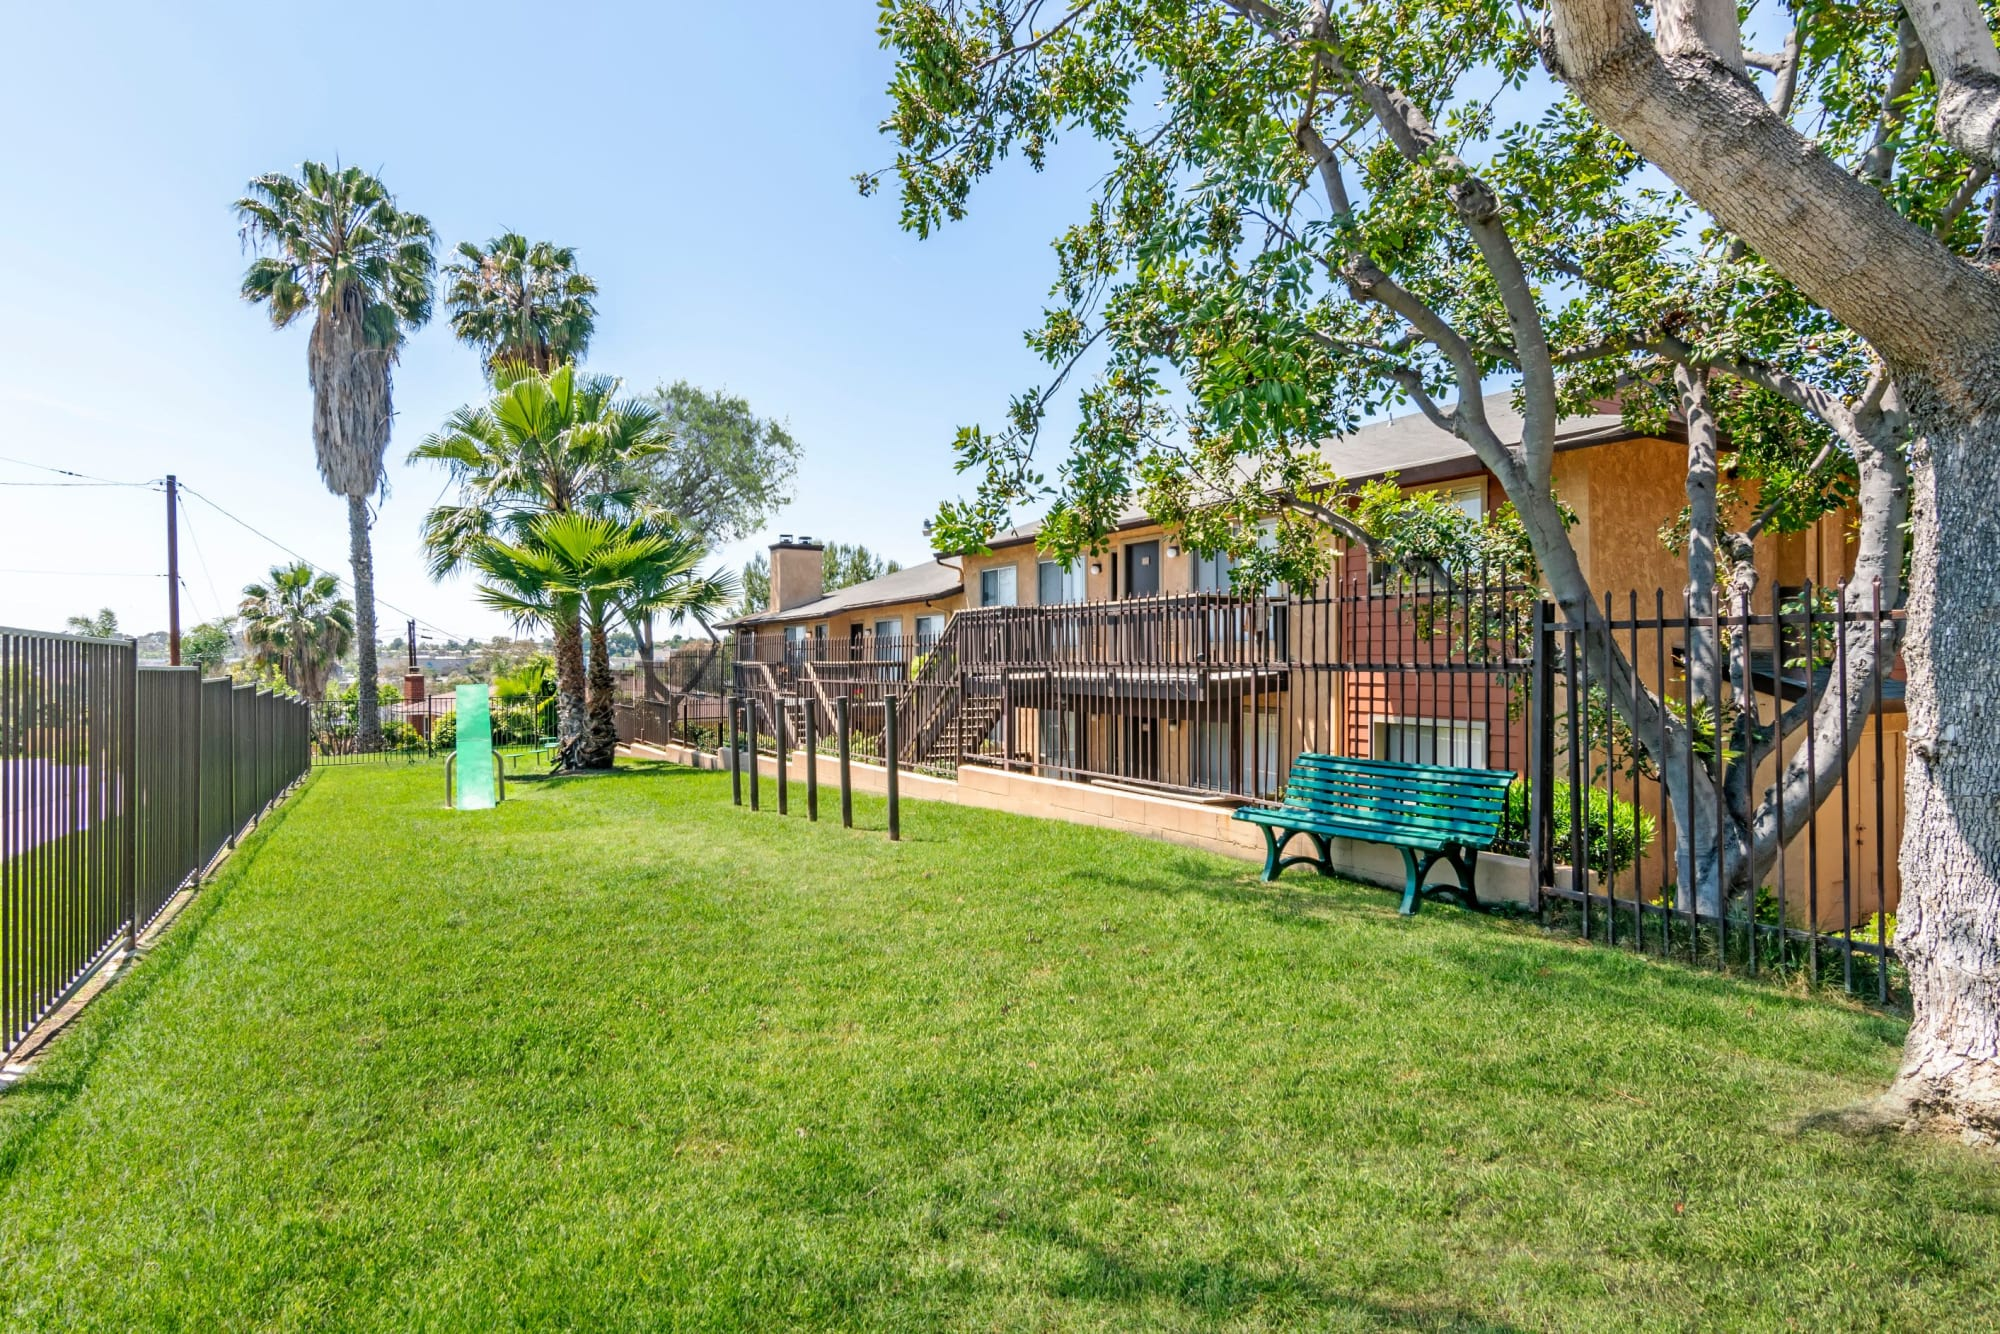 The onsite dog park at Hillside Terrace Apartments in Lemon Grove, California